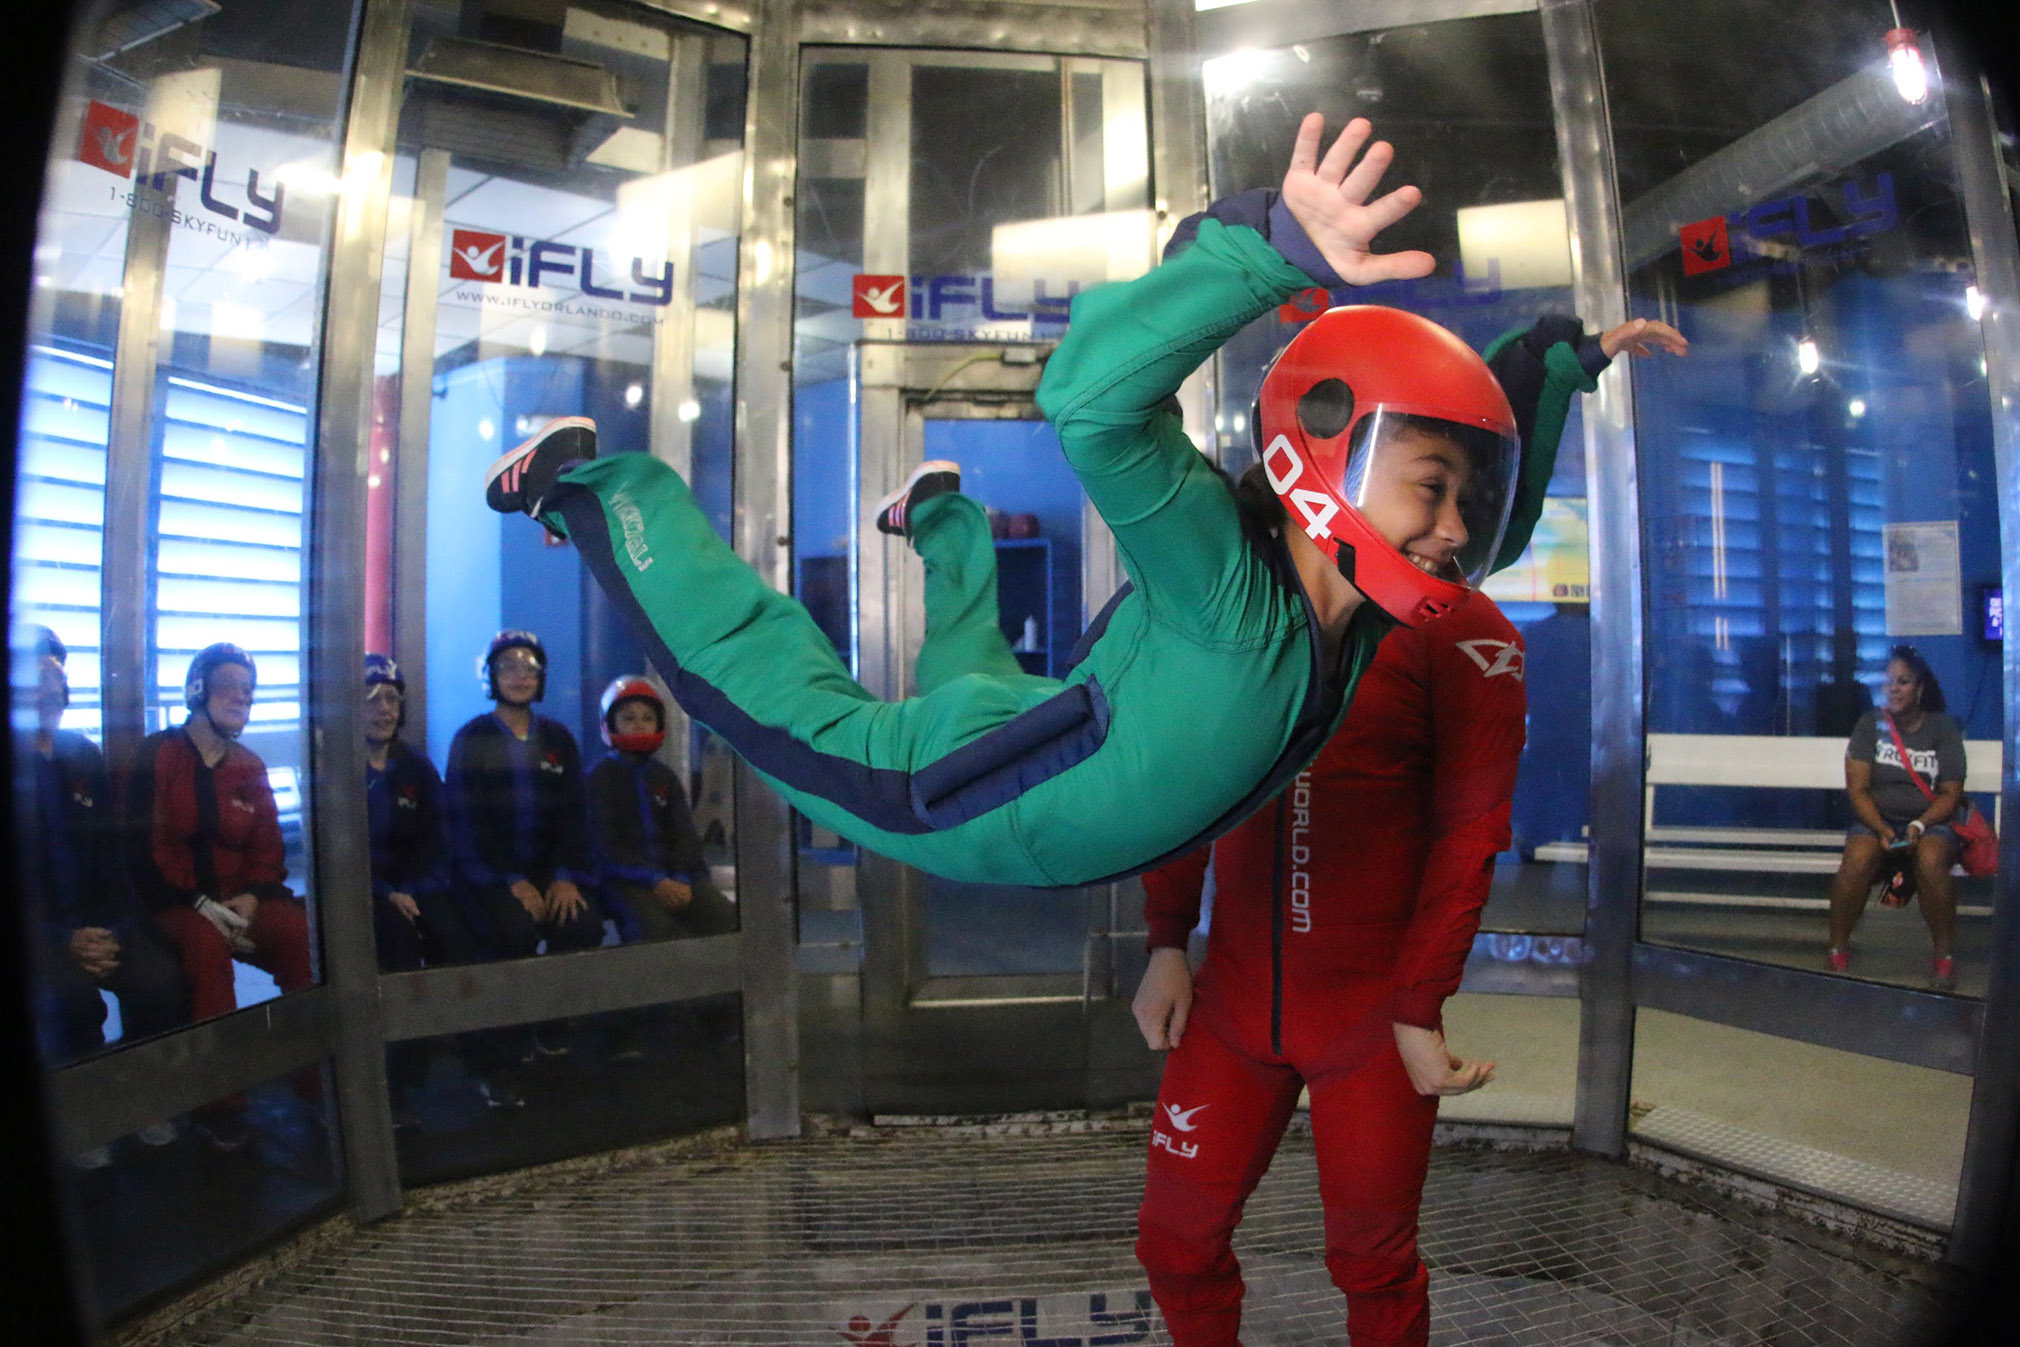 Fun things to do in Orlando Fun-Things-To-Do-In-Orlando ifly ifly orlando anthonya16.sg-host.com